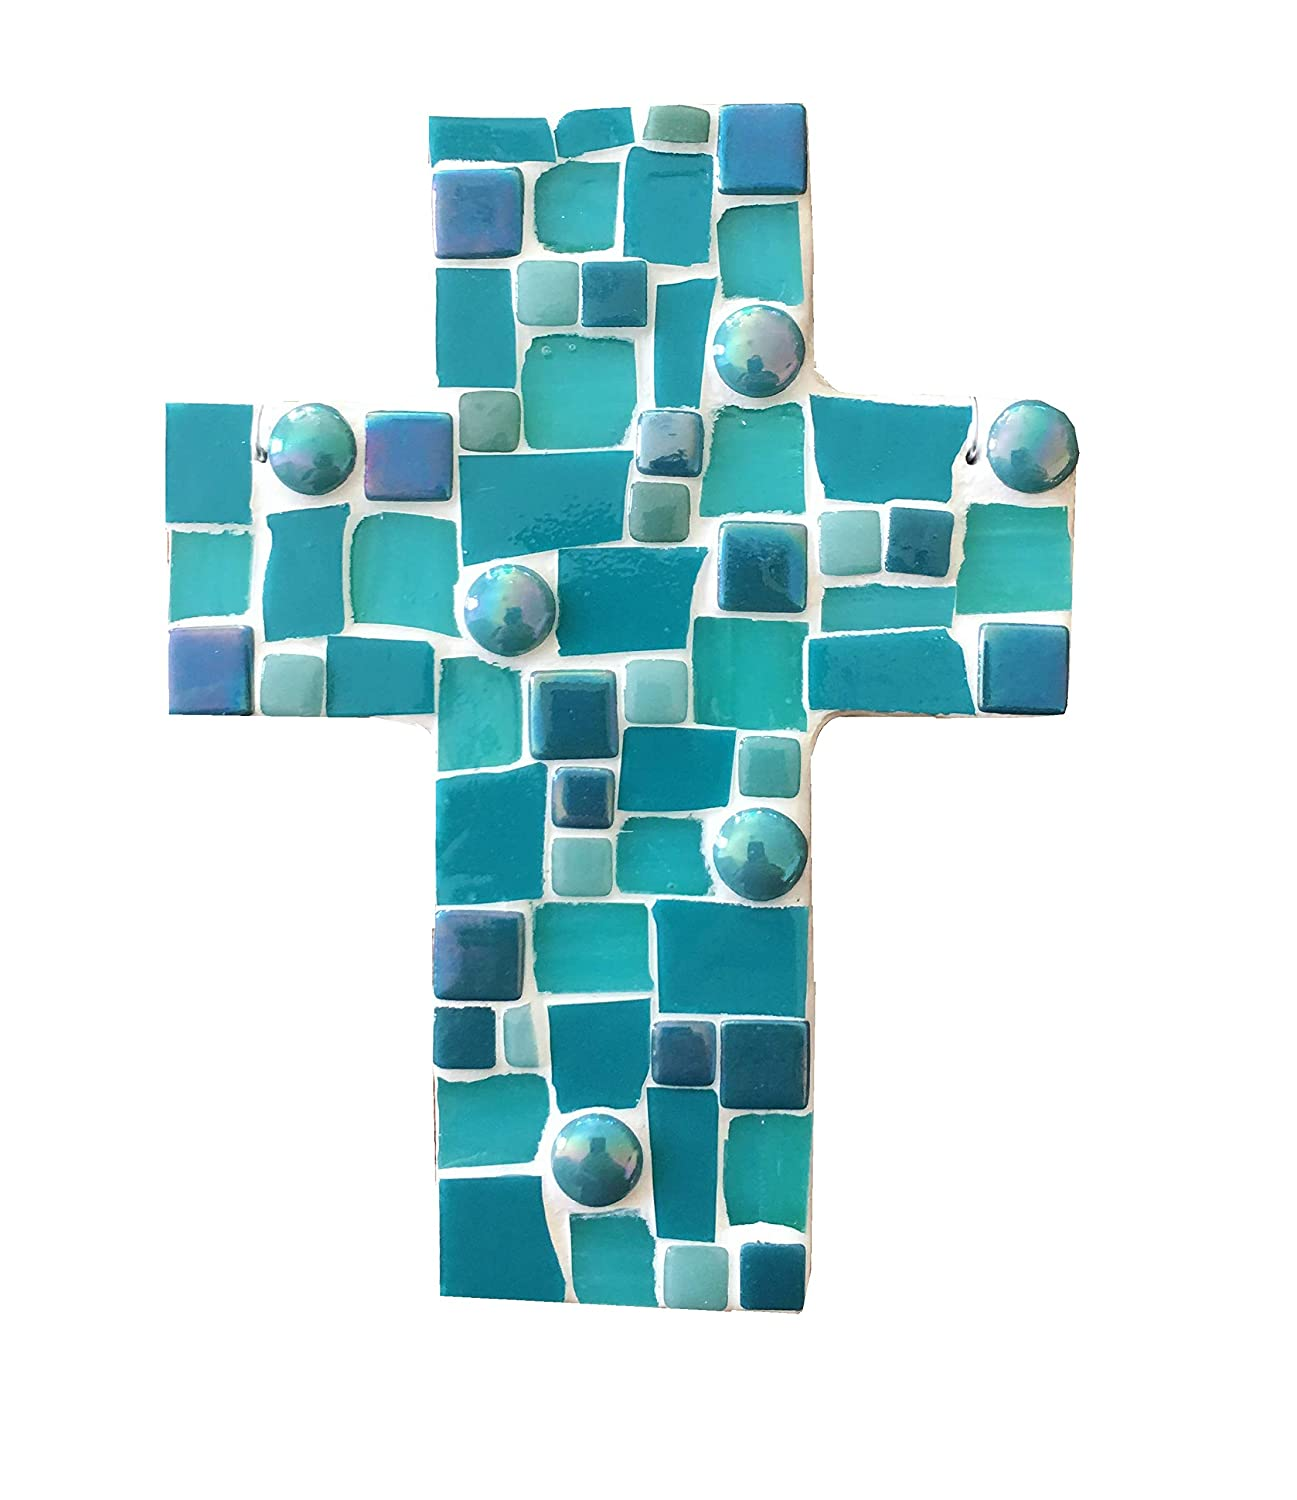 Mosaic Wall Cross Ornament, Assorted Blue and Teal stained glass with white colored grout